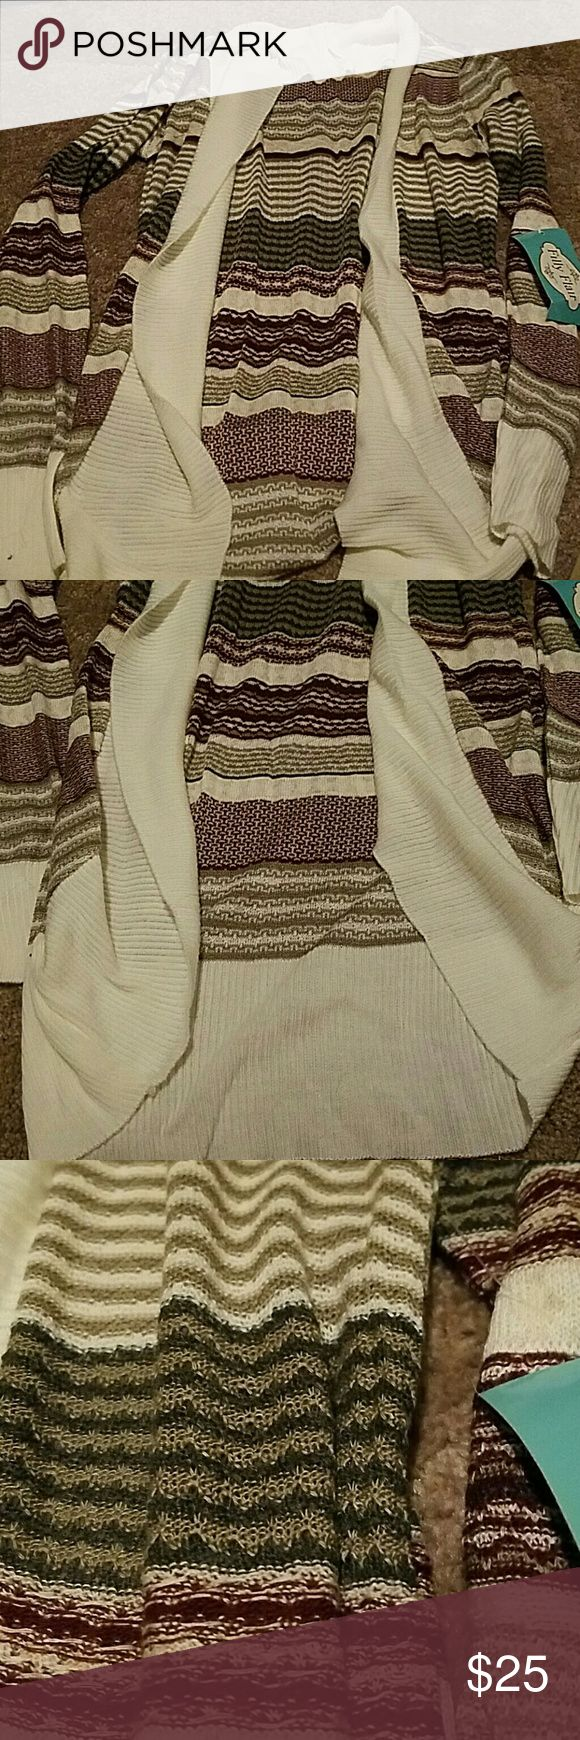 NWT Filly Flair cardigan NWT, cocoon style cardigan. Filly Flair Sweaters Cardigans